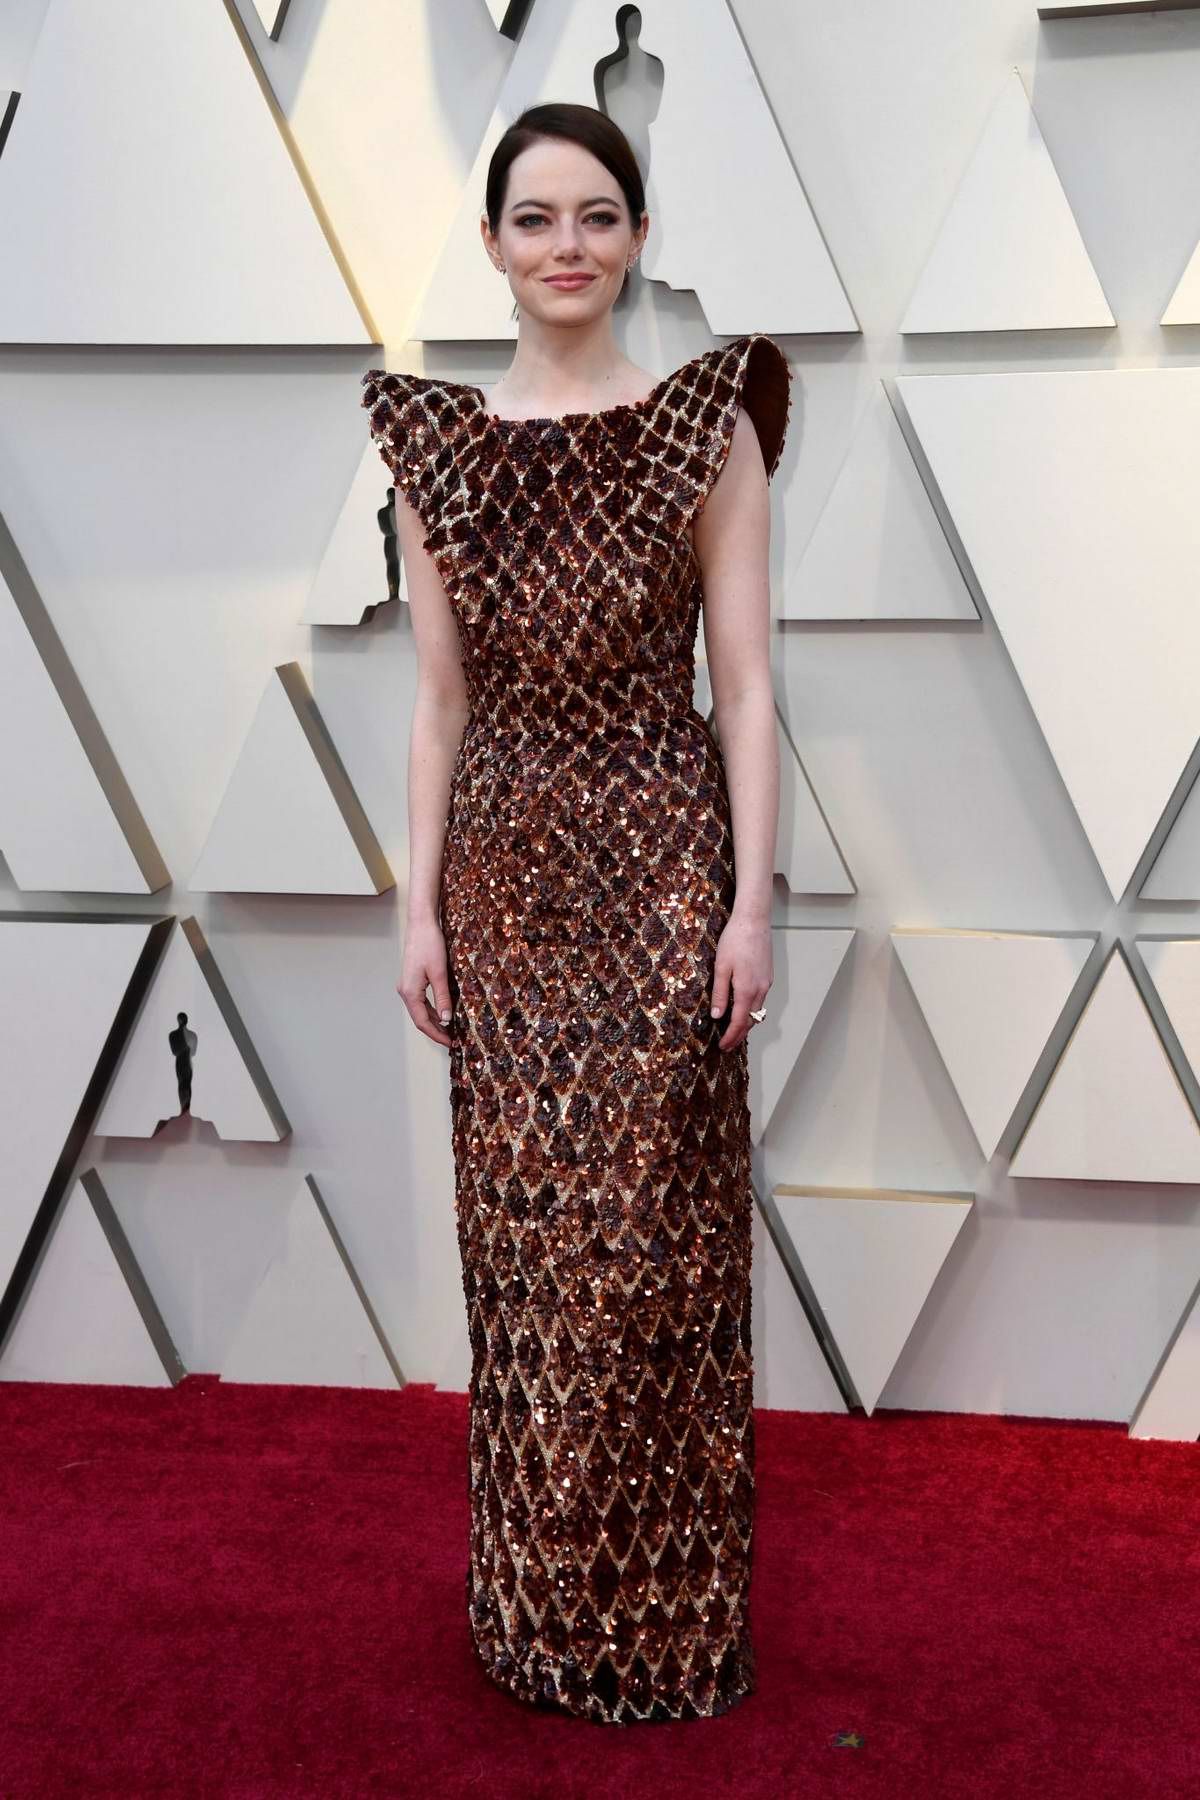 Emma Stone attends the 91st Annual Academy Awards (Oscars 2019) held at the Dolby Theatre in Hollywood, California